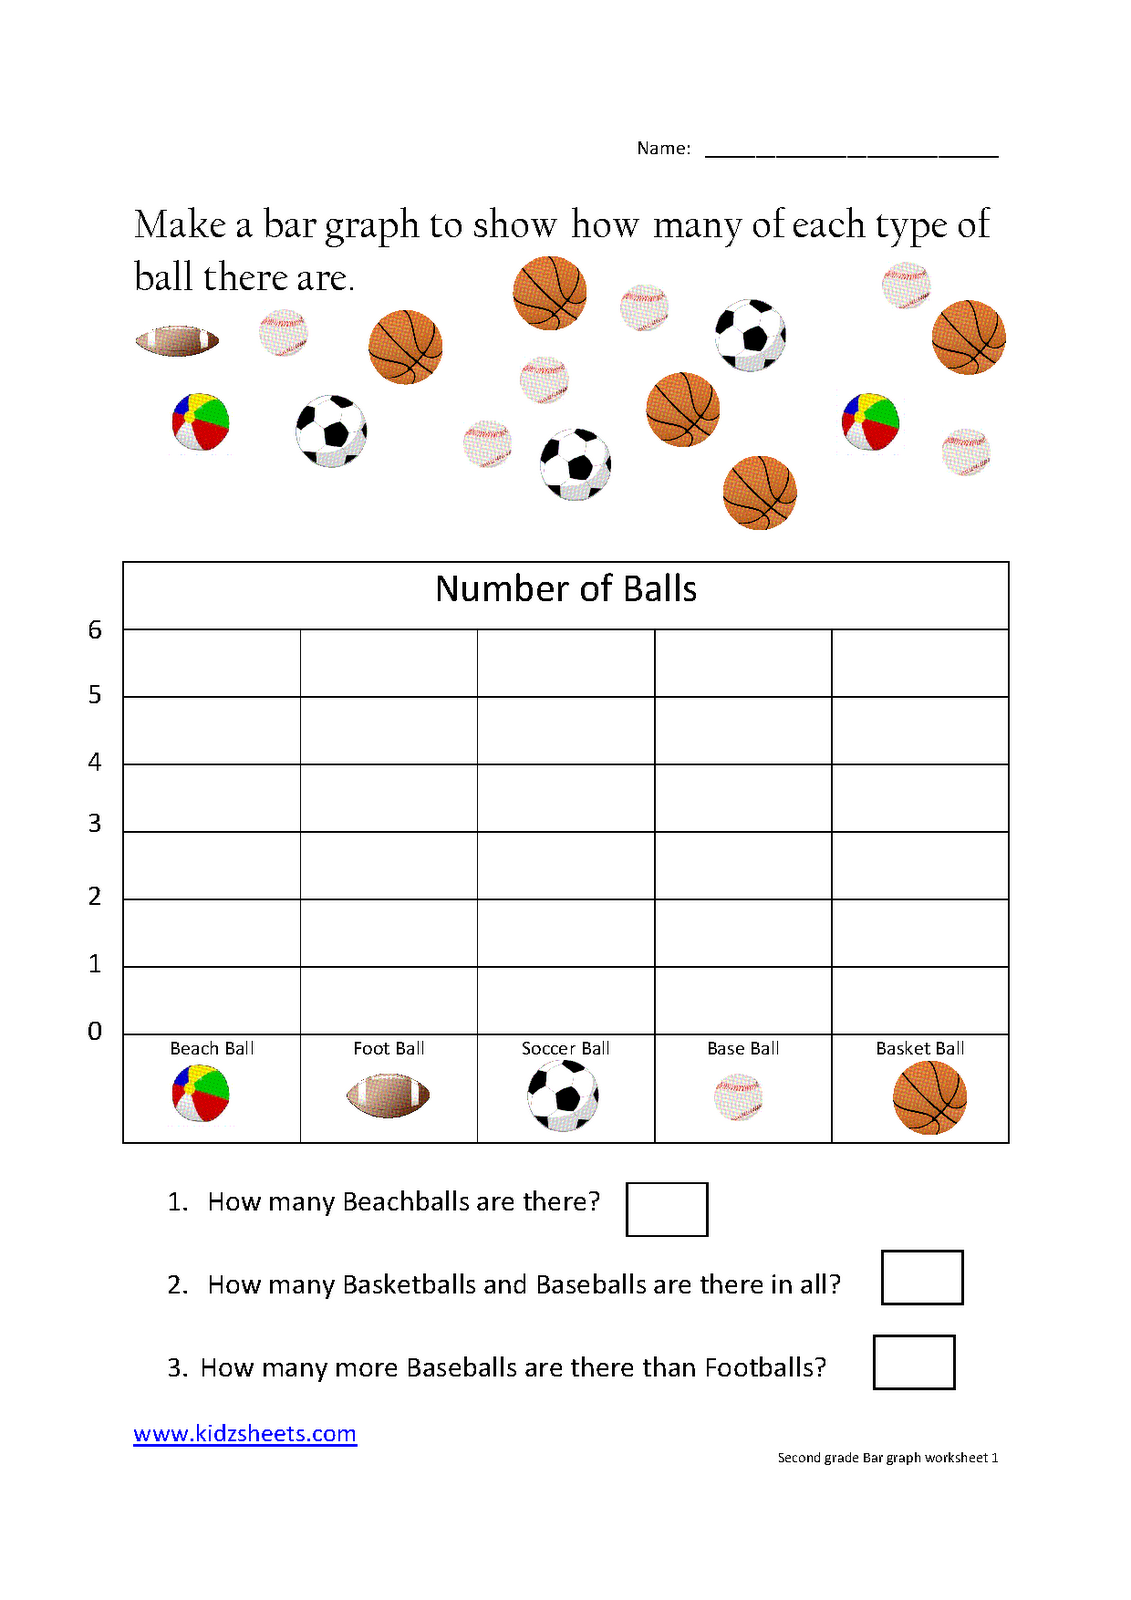 Worksheets Graph Worksheets For 2nd Grade kidz worksheets second grade bar graph worksheet1 graph